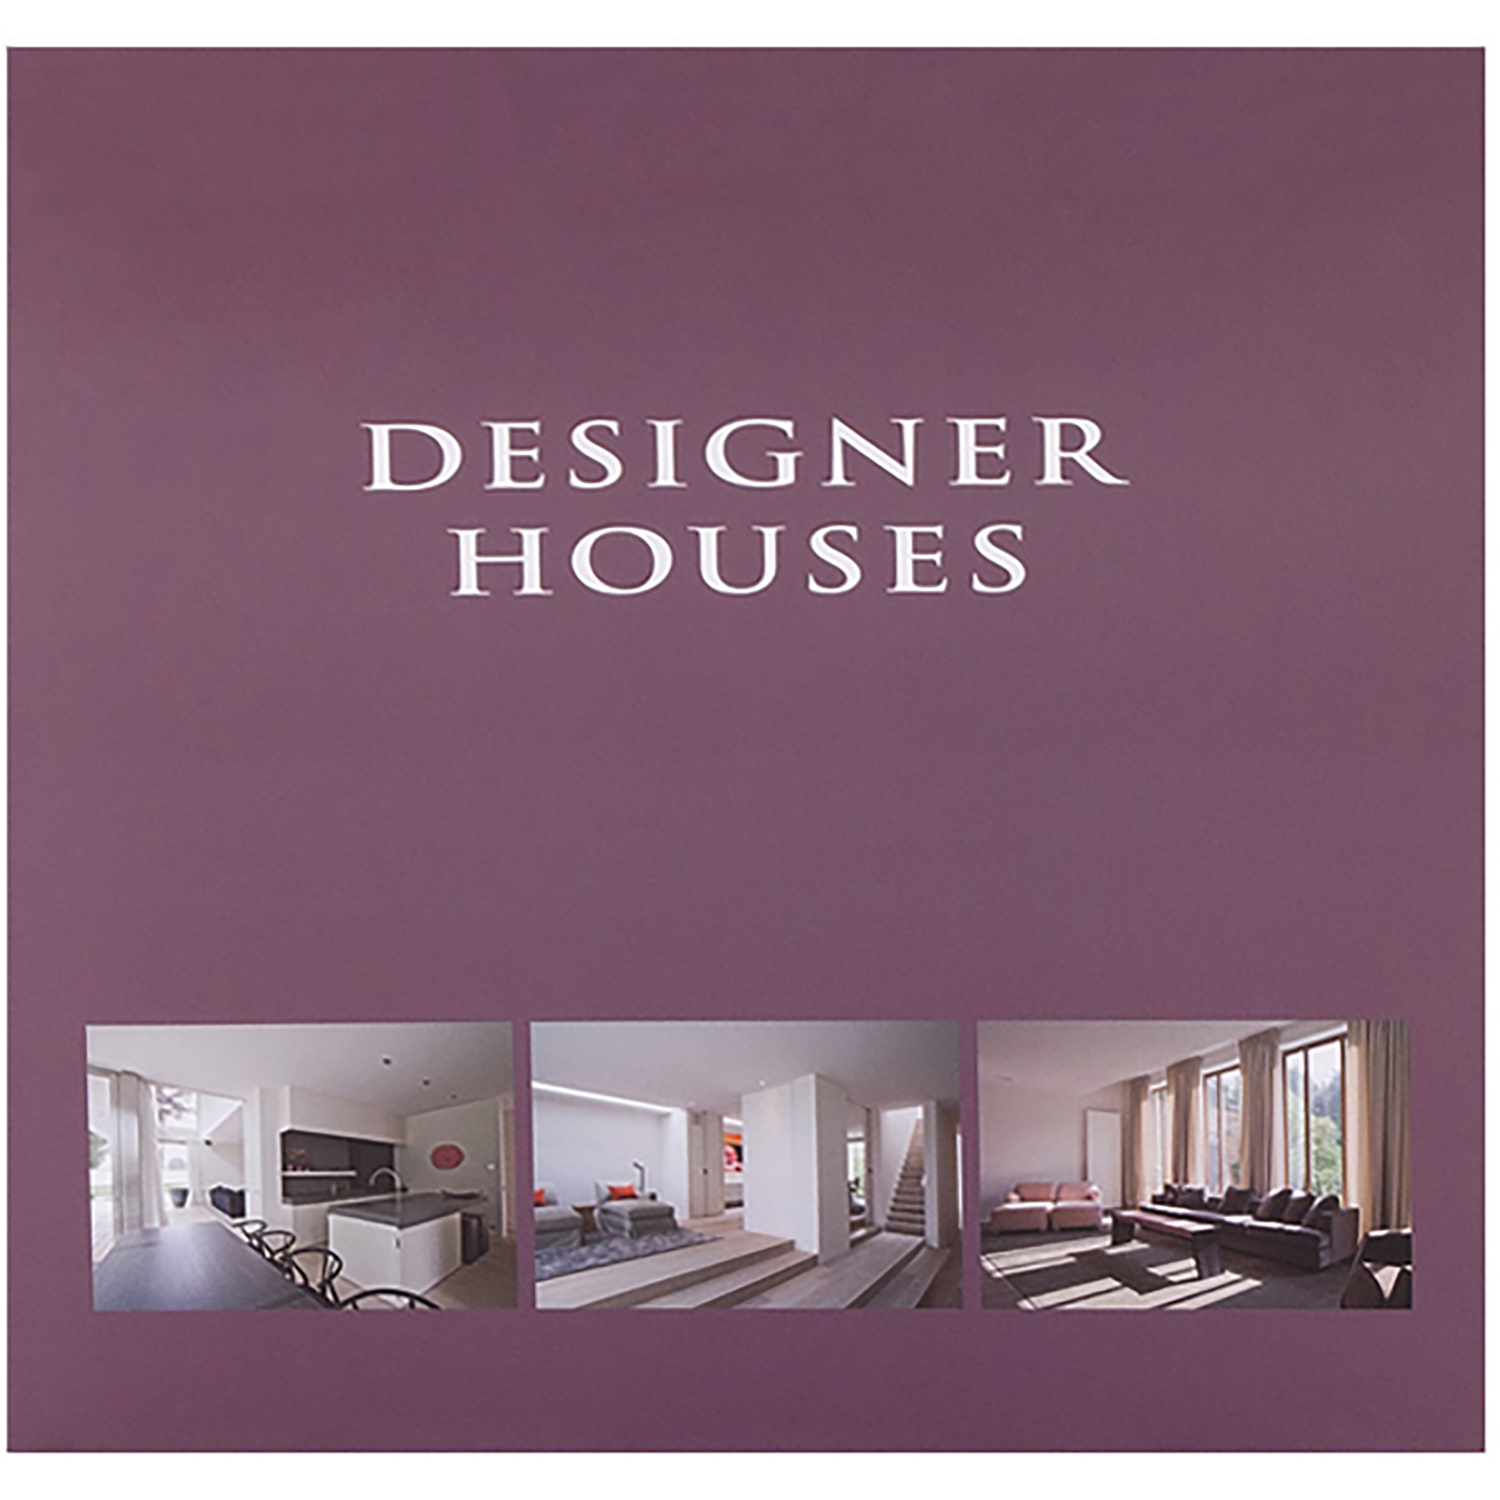 Designer Houses Coffee Table Book